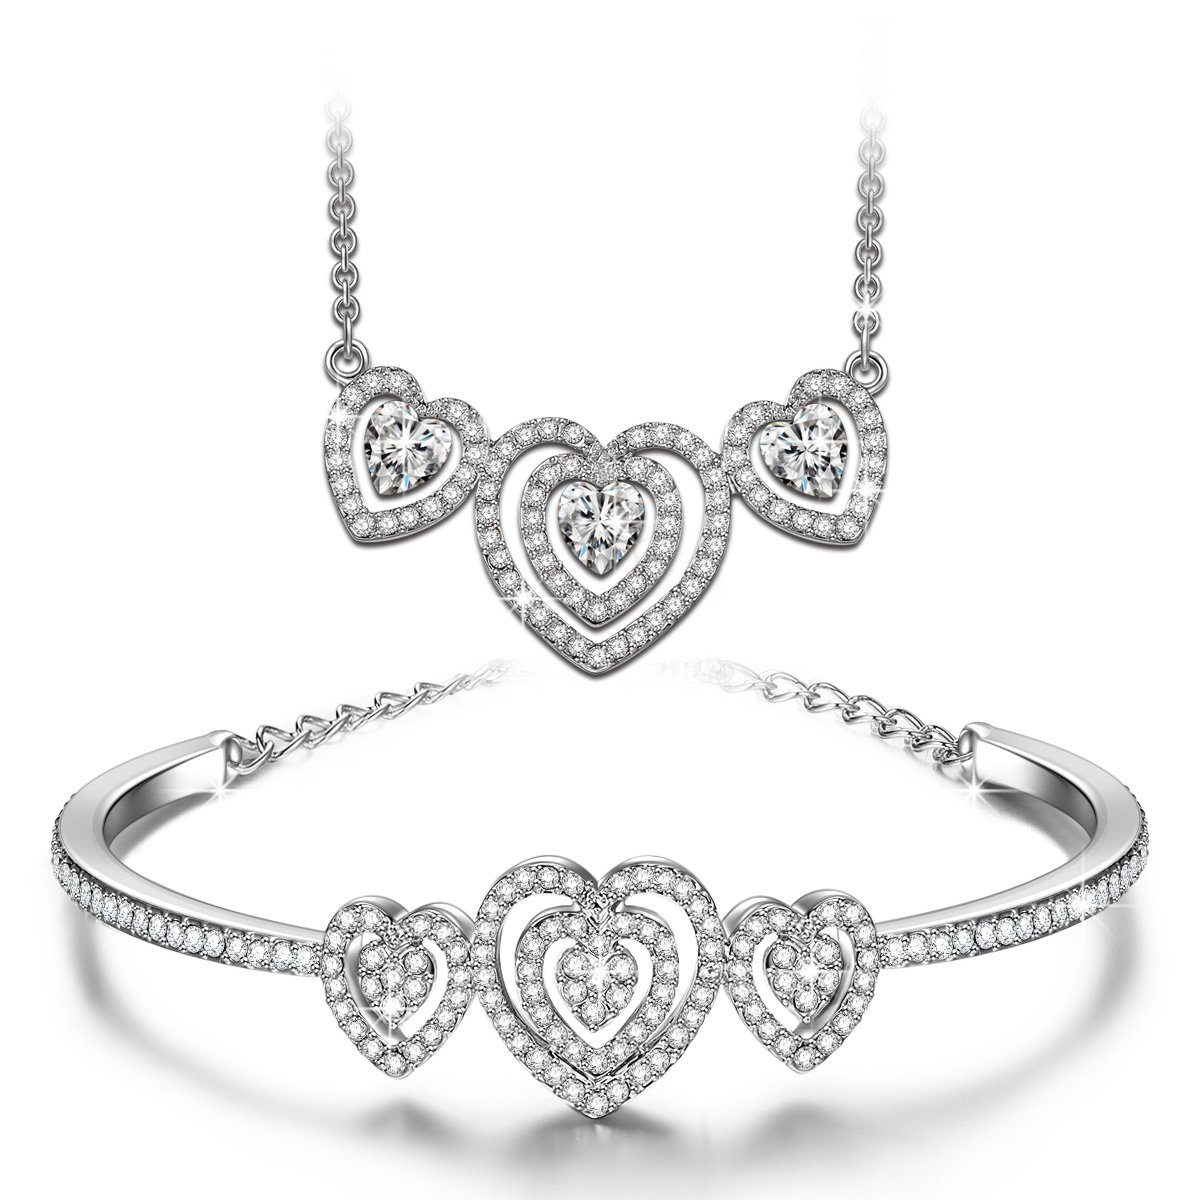 4c3a8d19aeb5c J.NINA Loving Song White-Gold Plated Pendant Crystals from Swarovski Sweet  Heart Necklace Bracelet Jewelry Set - Bib Necklace & Bangle Bracelet Best  ...